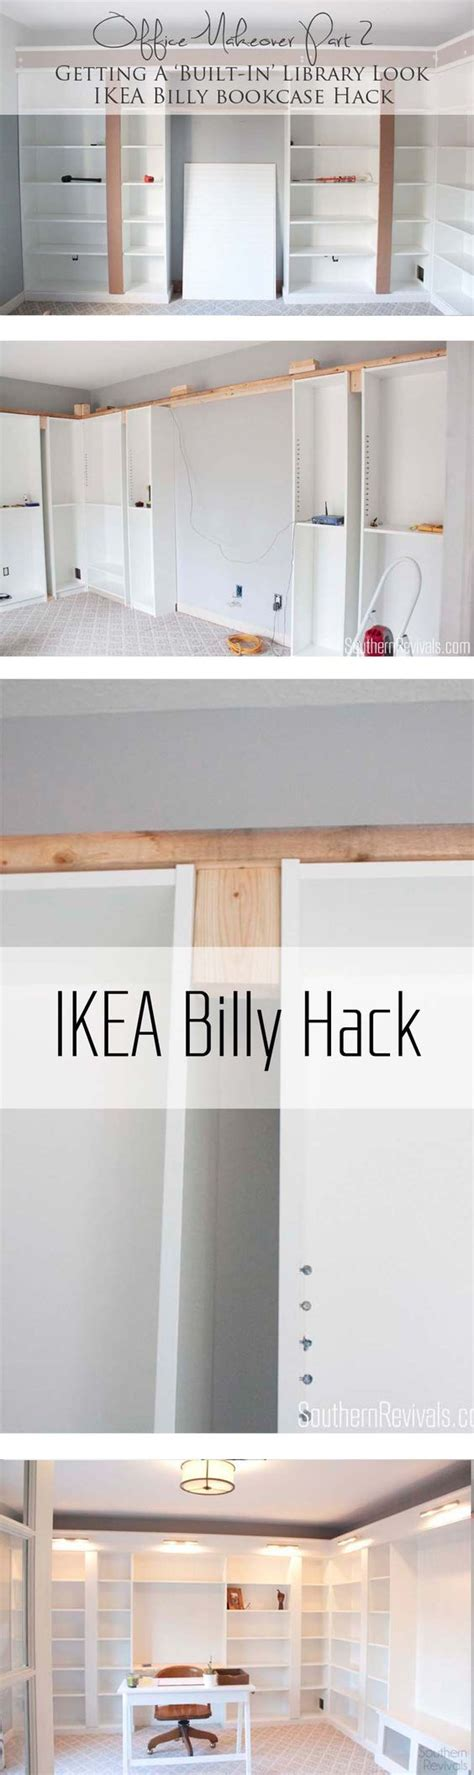 ikea hacks pinterest billy bookcases ikea hacks and library home on pinterest